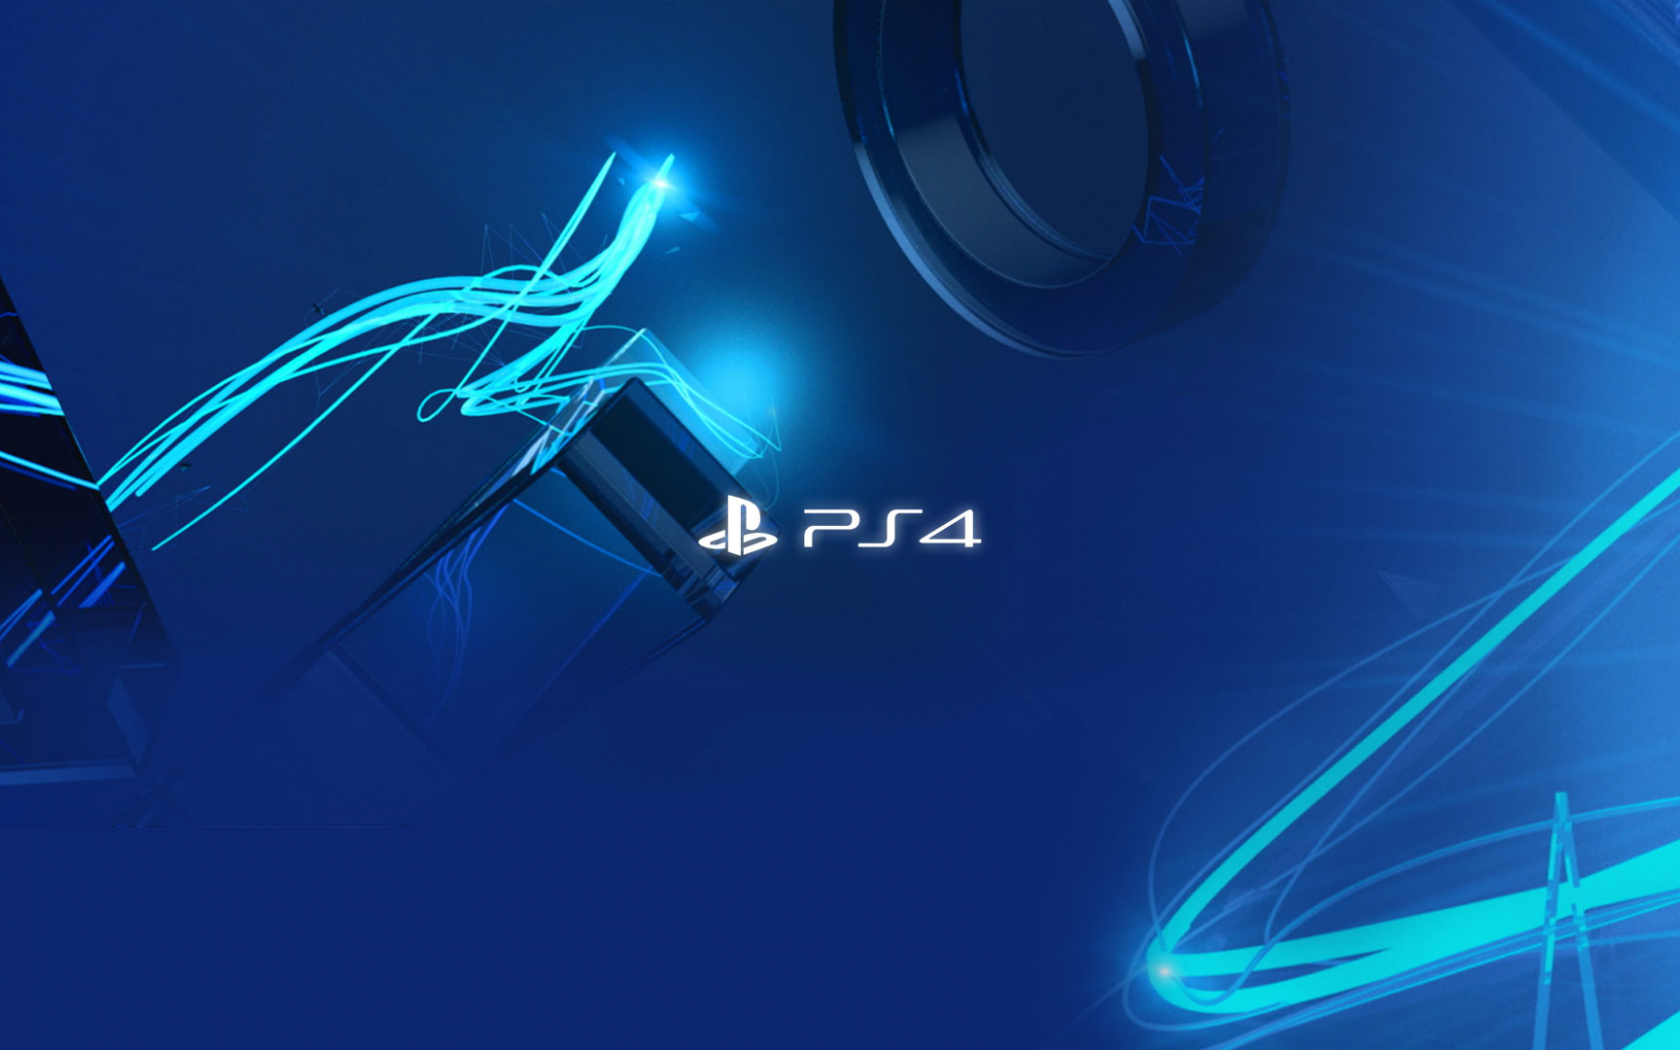 Ps3 Themes And Wallpaper, Ps3 Hd Wallpapers